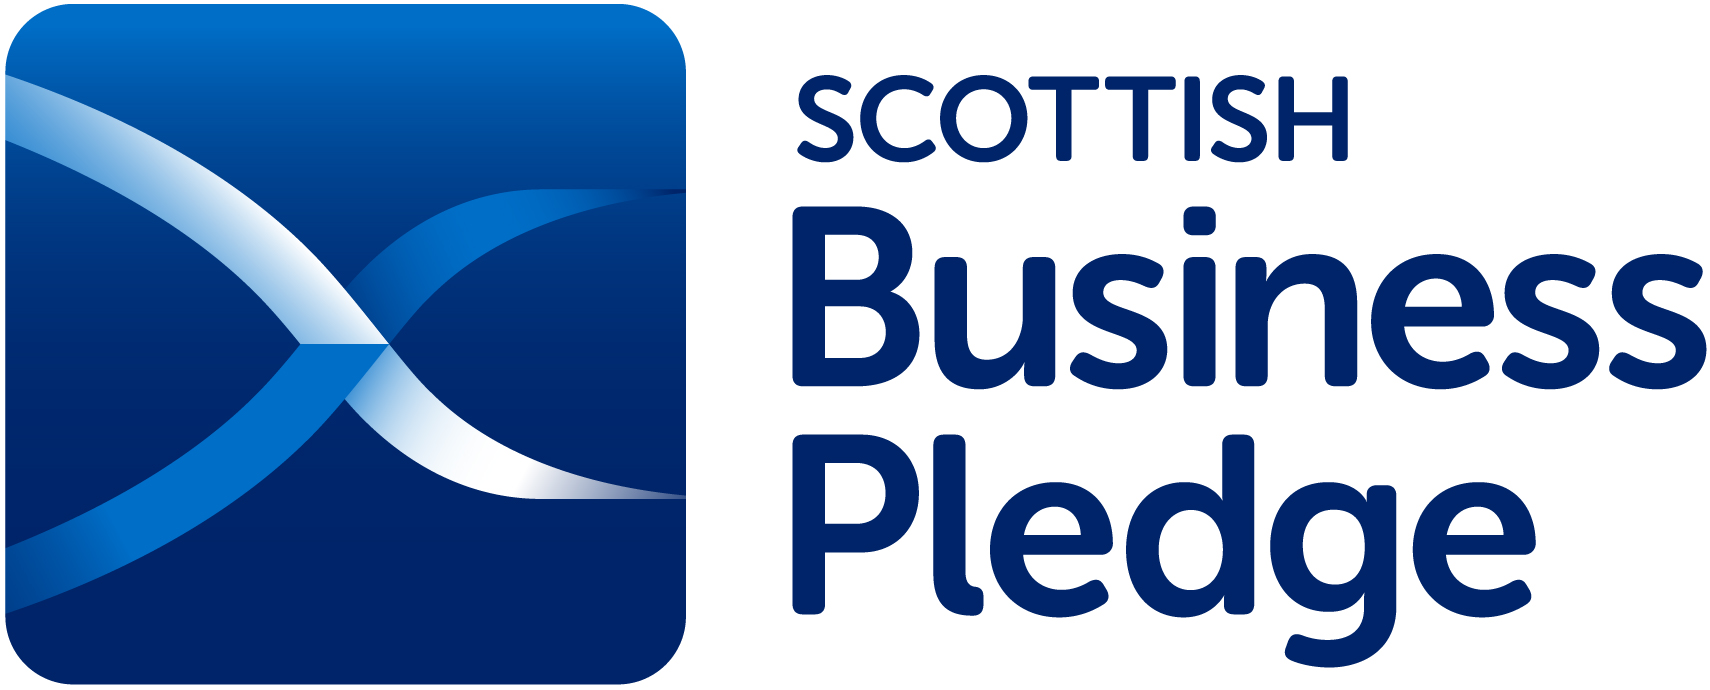 The Scottish Business Pledge